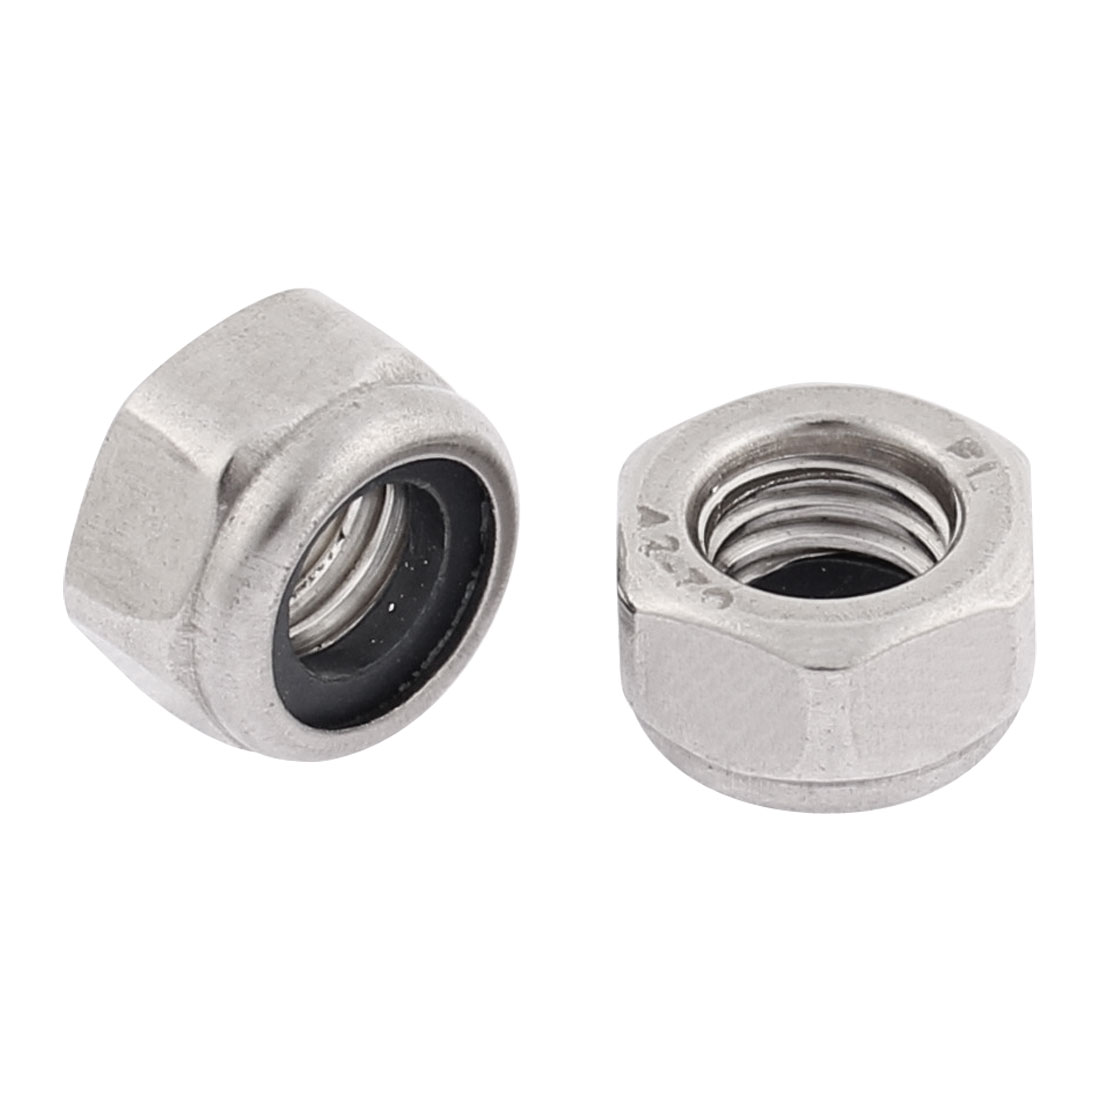 2pcs M8 Stainless Steel Anti-loose Hex Nylon Insert Lock Nuts Fasteners